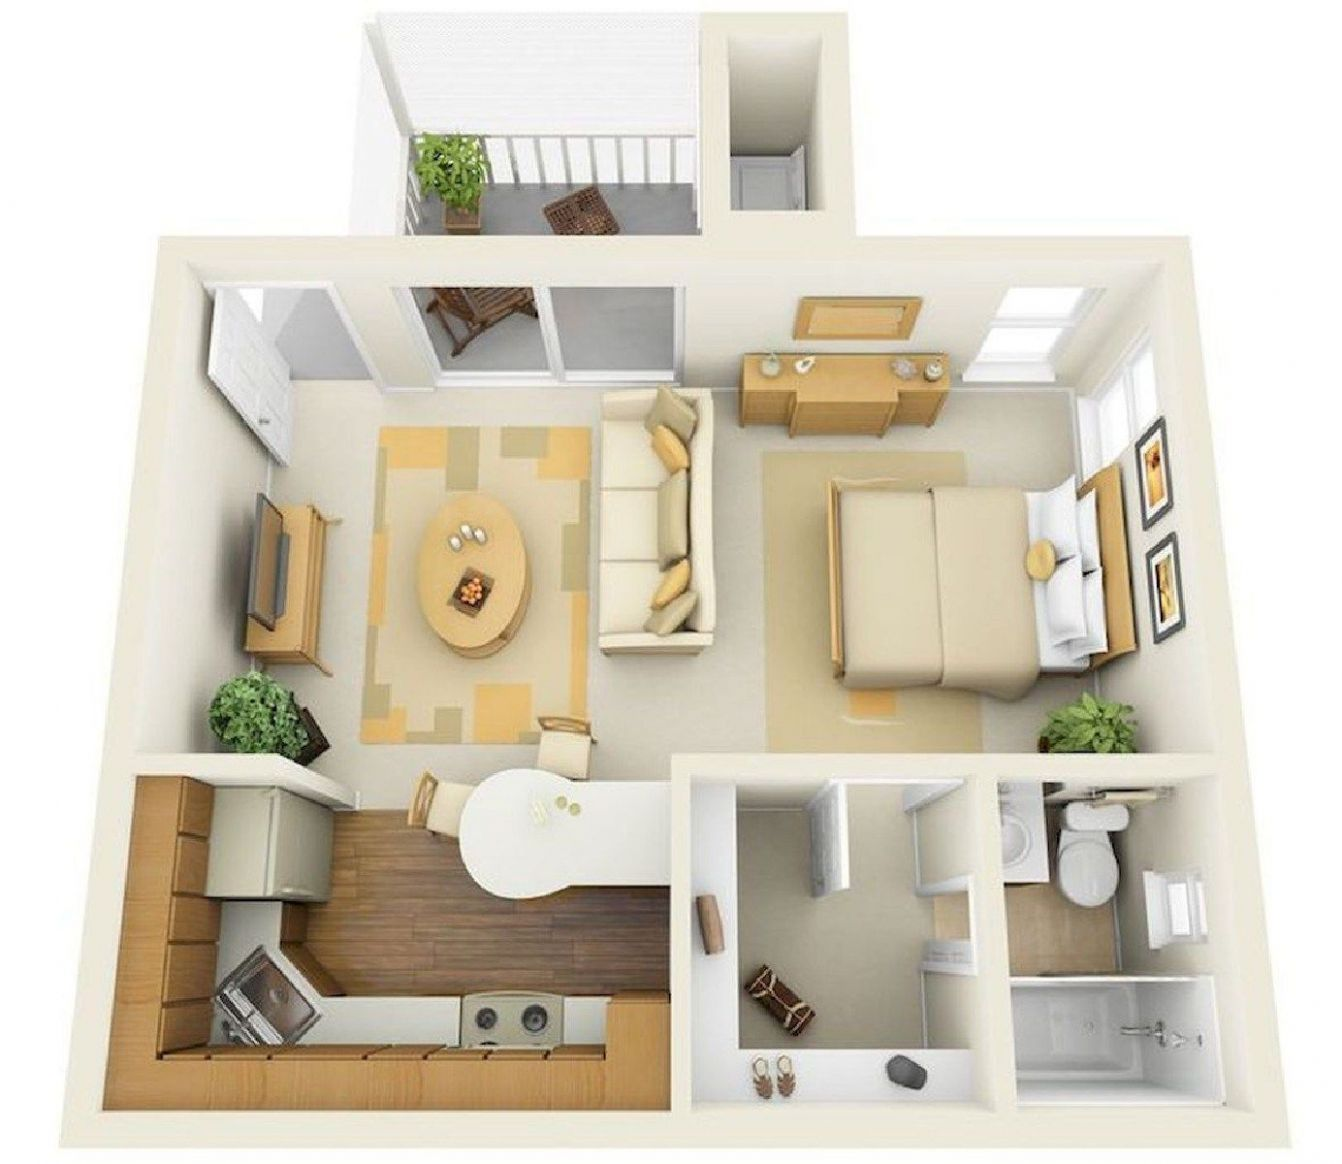 Best Layout Ideas for One Room Apartment Design 11 | Apartment ..